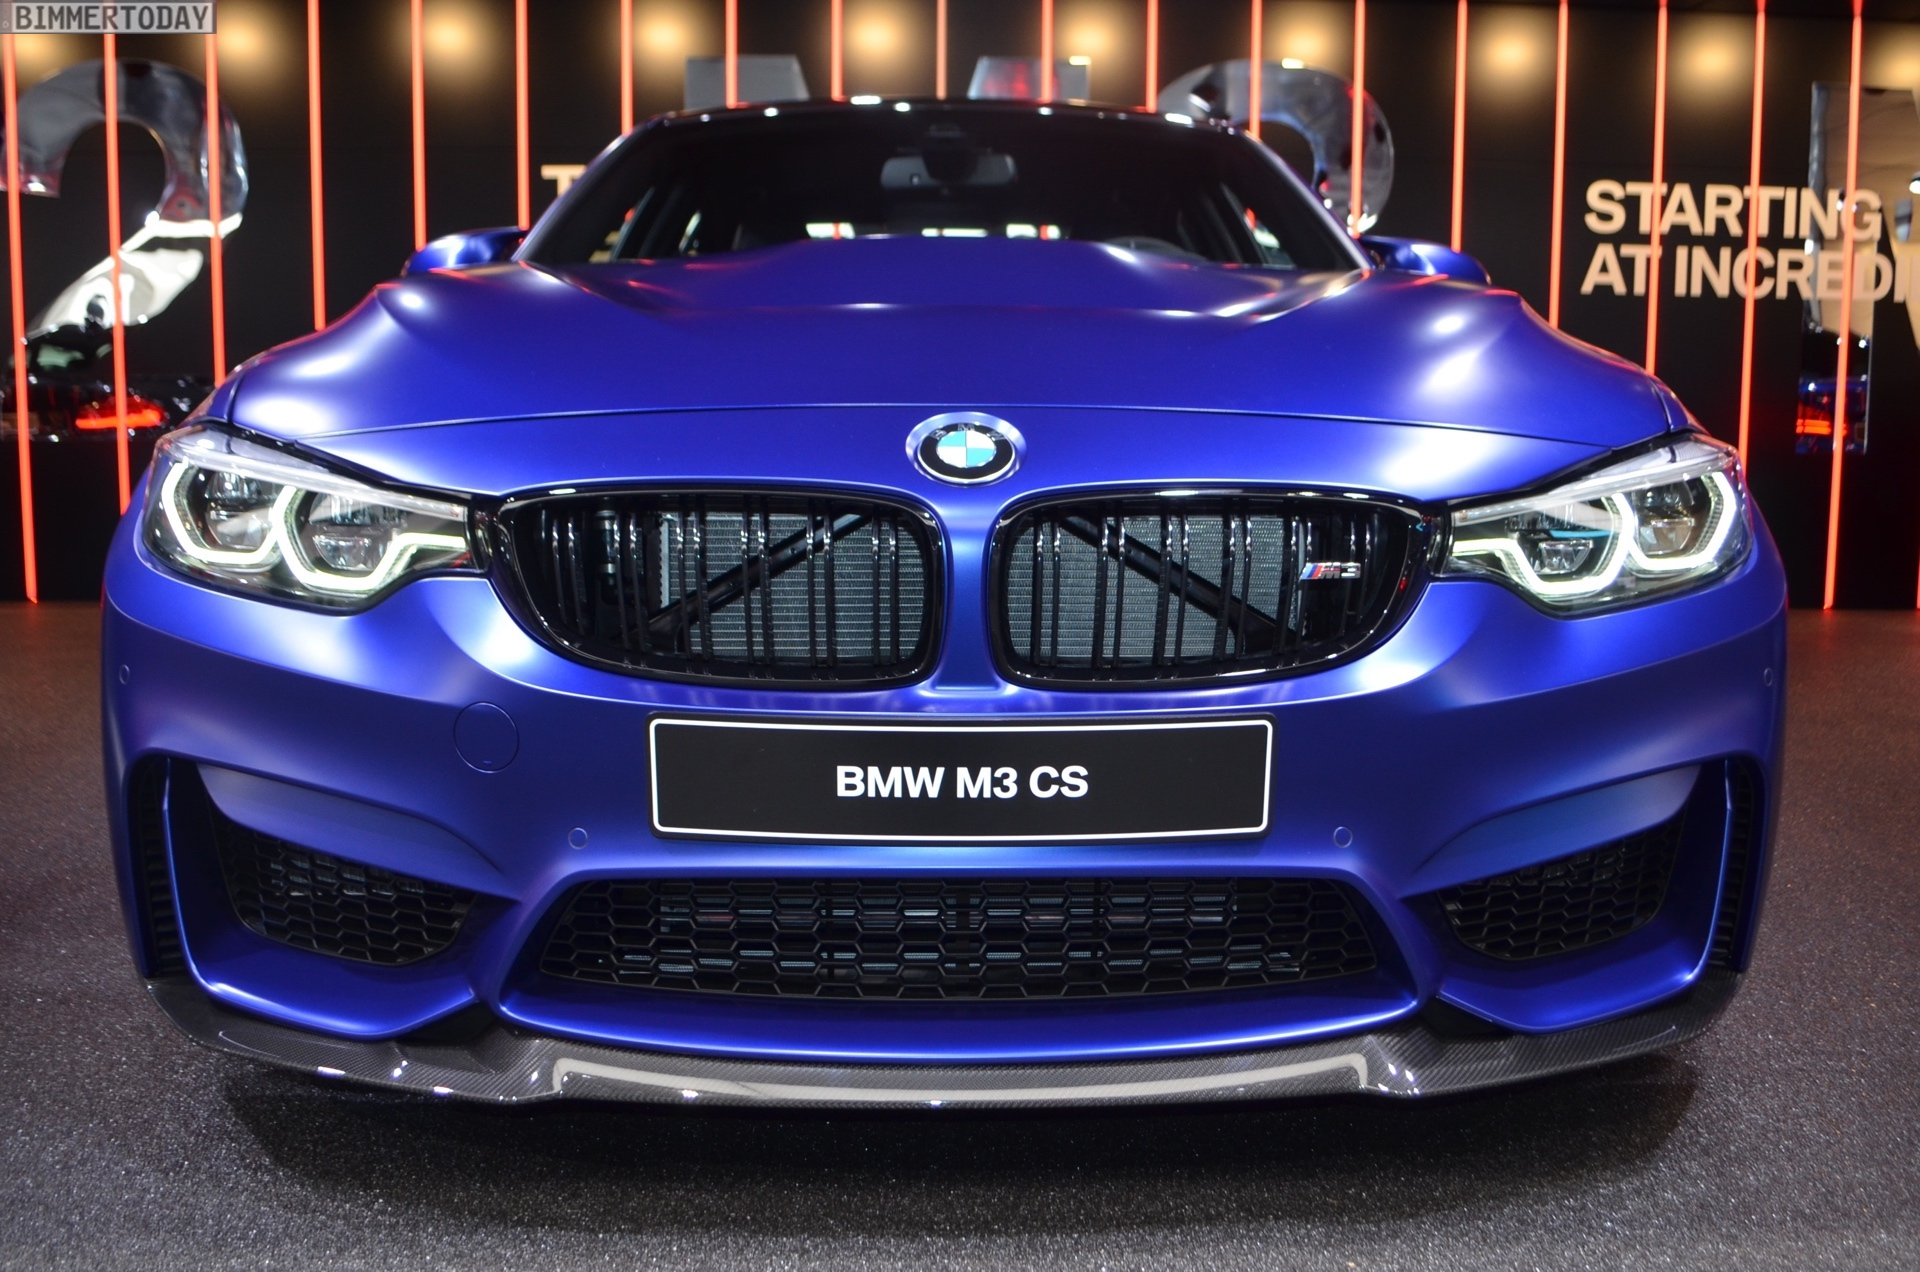 2018 Geneva Live Photos Of The Bmw M3 Cs F80 In Frozen Dark Blue